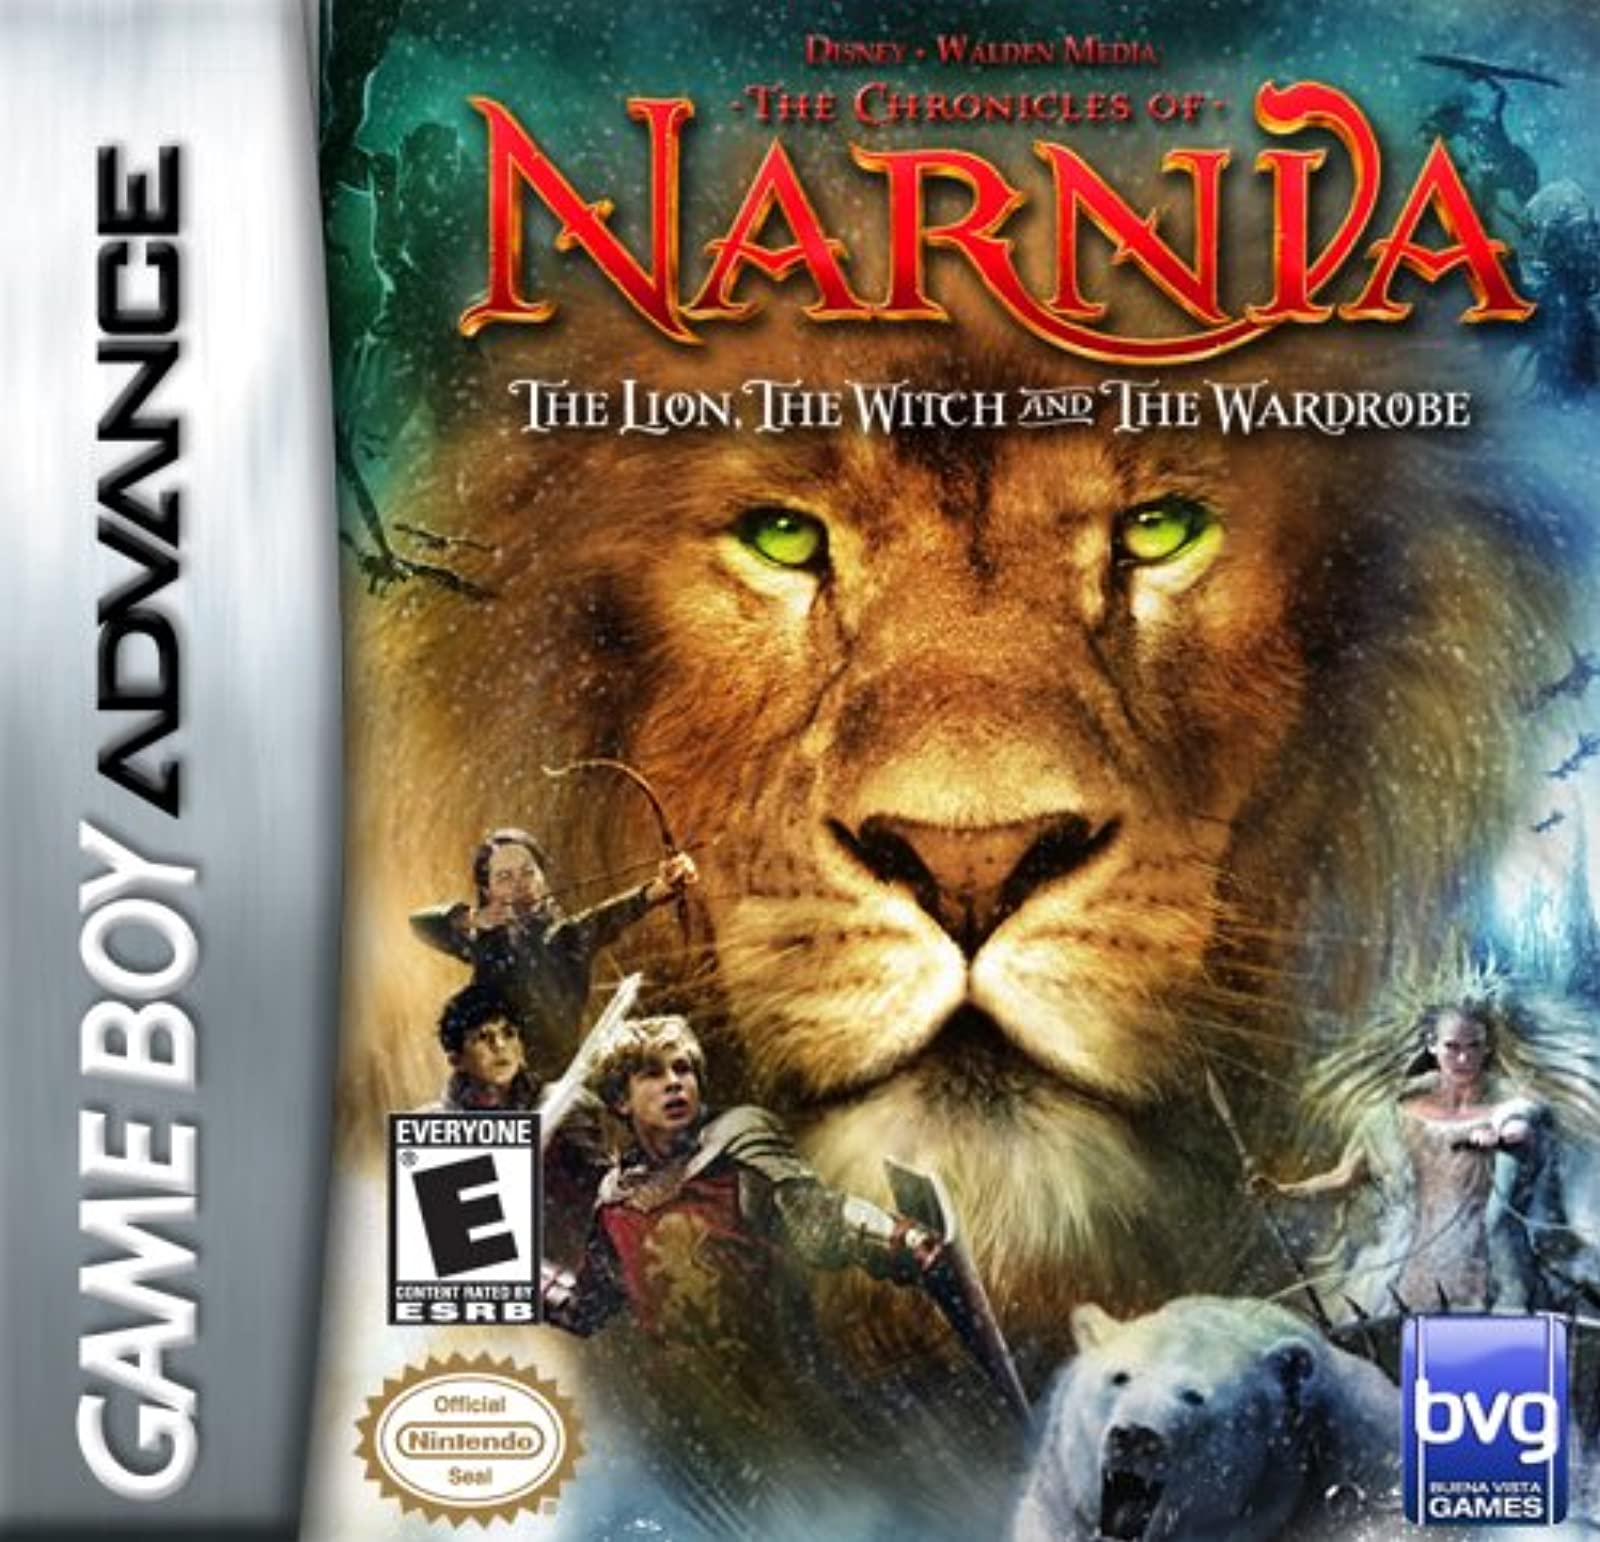 The Chronicles Of Narnia The Lion The Witch And The Wardrobe For GBA